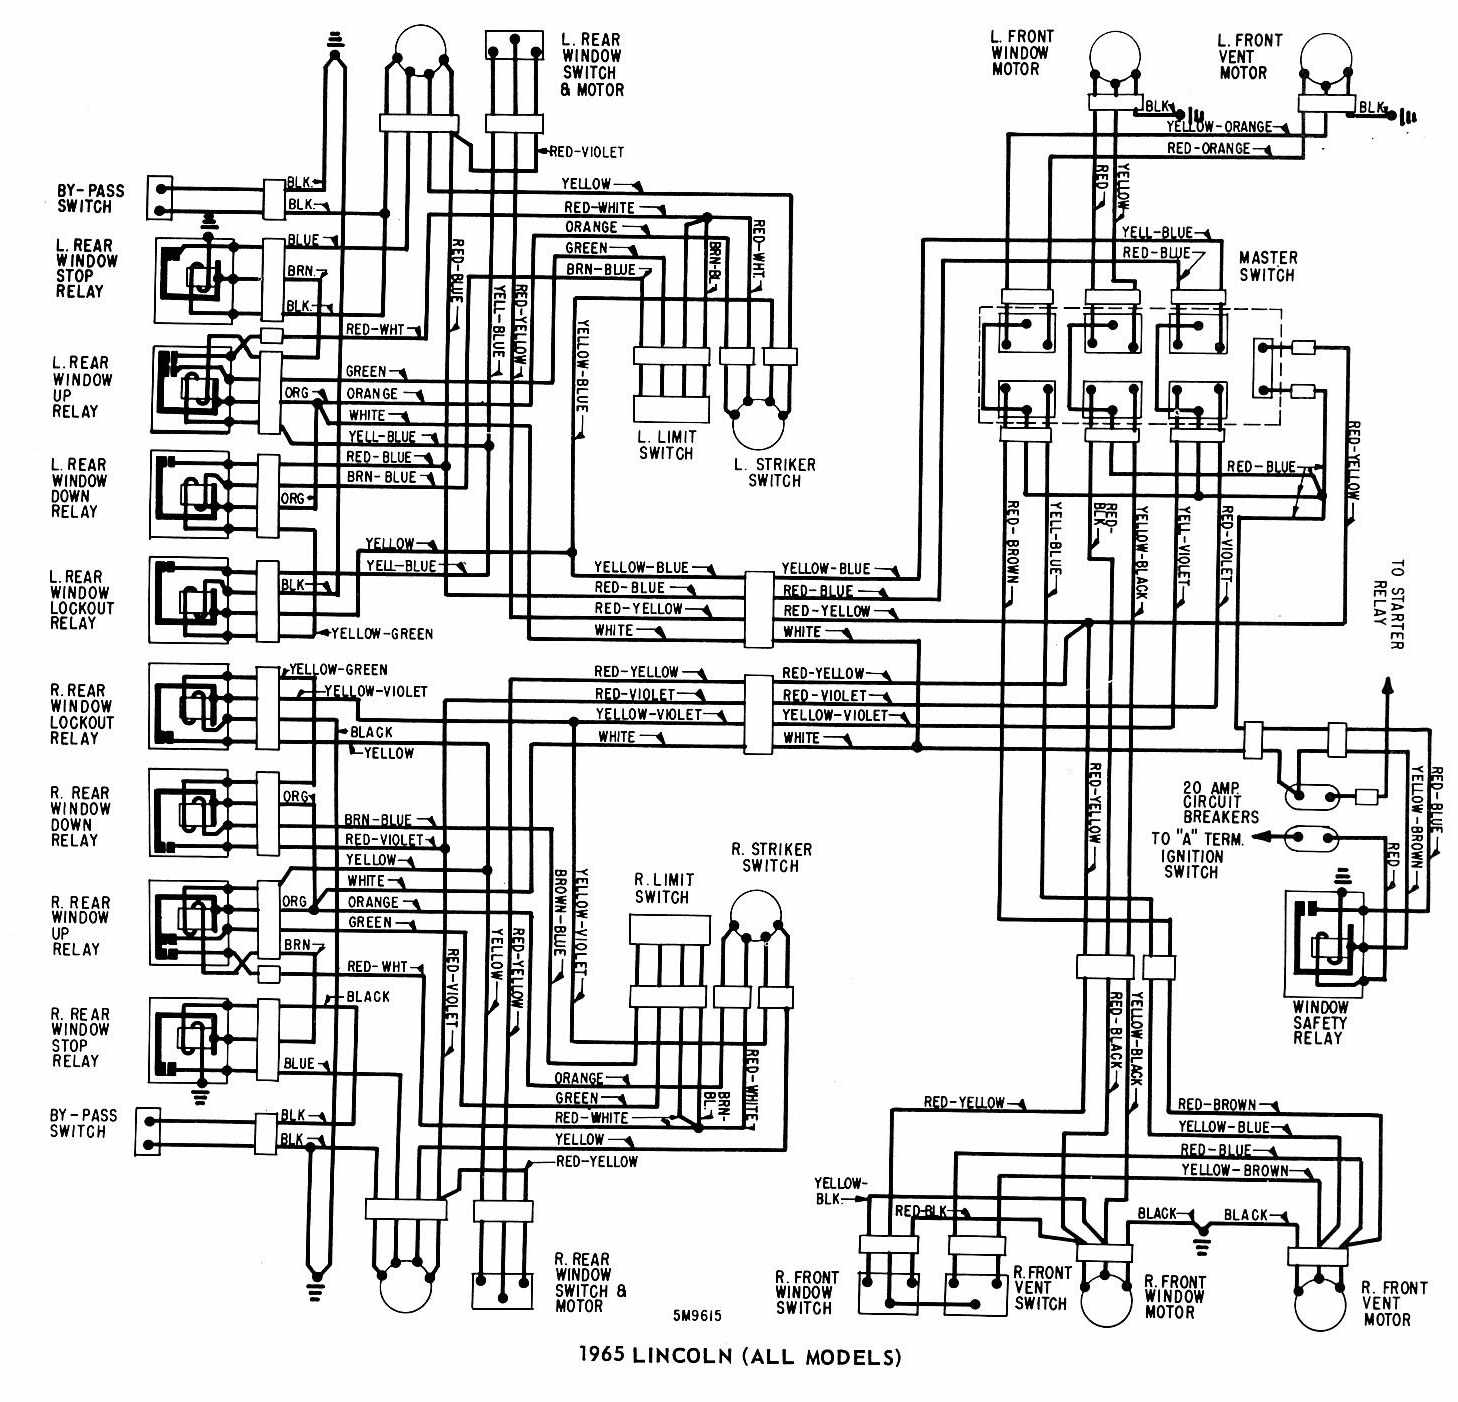 small resolution of 1962 lincoln wiring diagram free wiring diagram for you u2022 lincoln parts diagrams lincoln wiring diagram